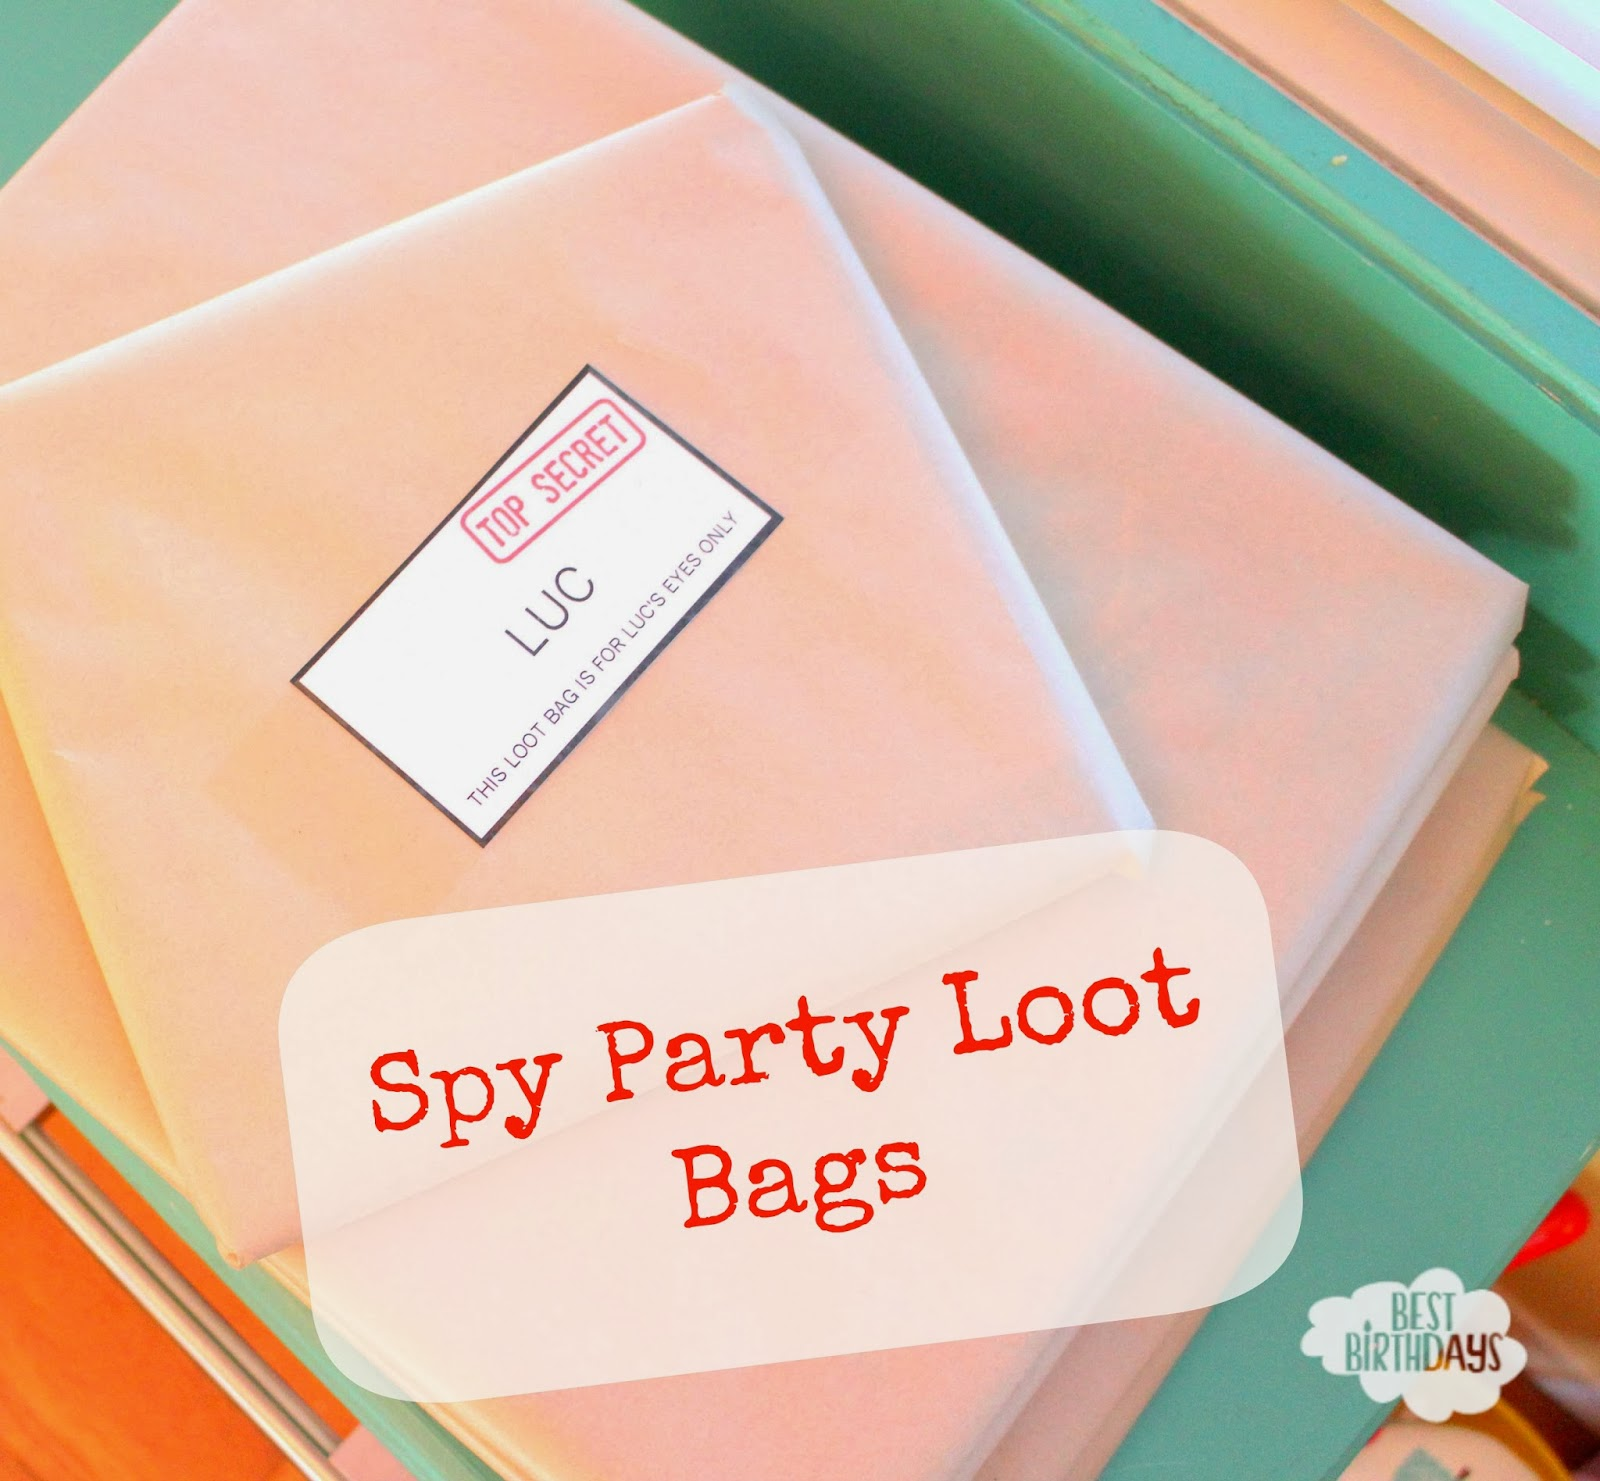 Best Birthdays: Spy Party Loot Bags